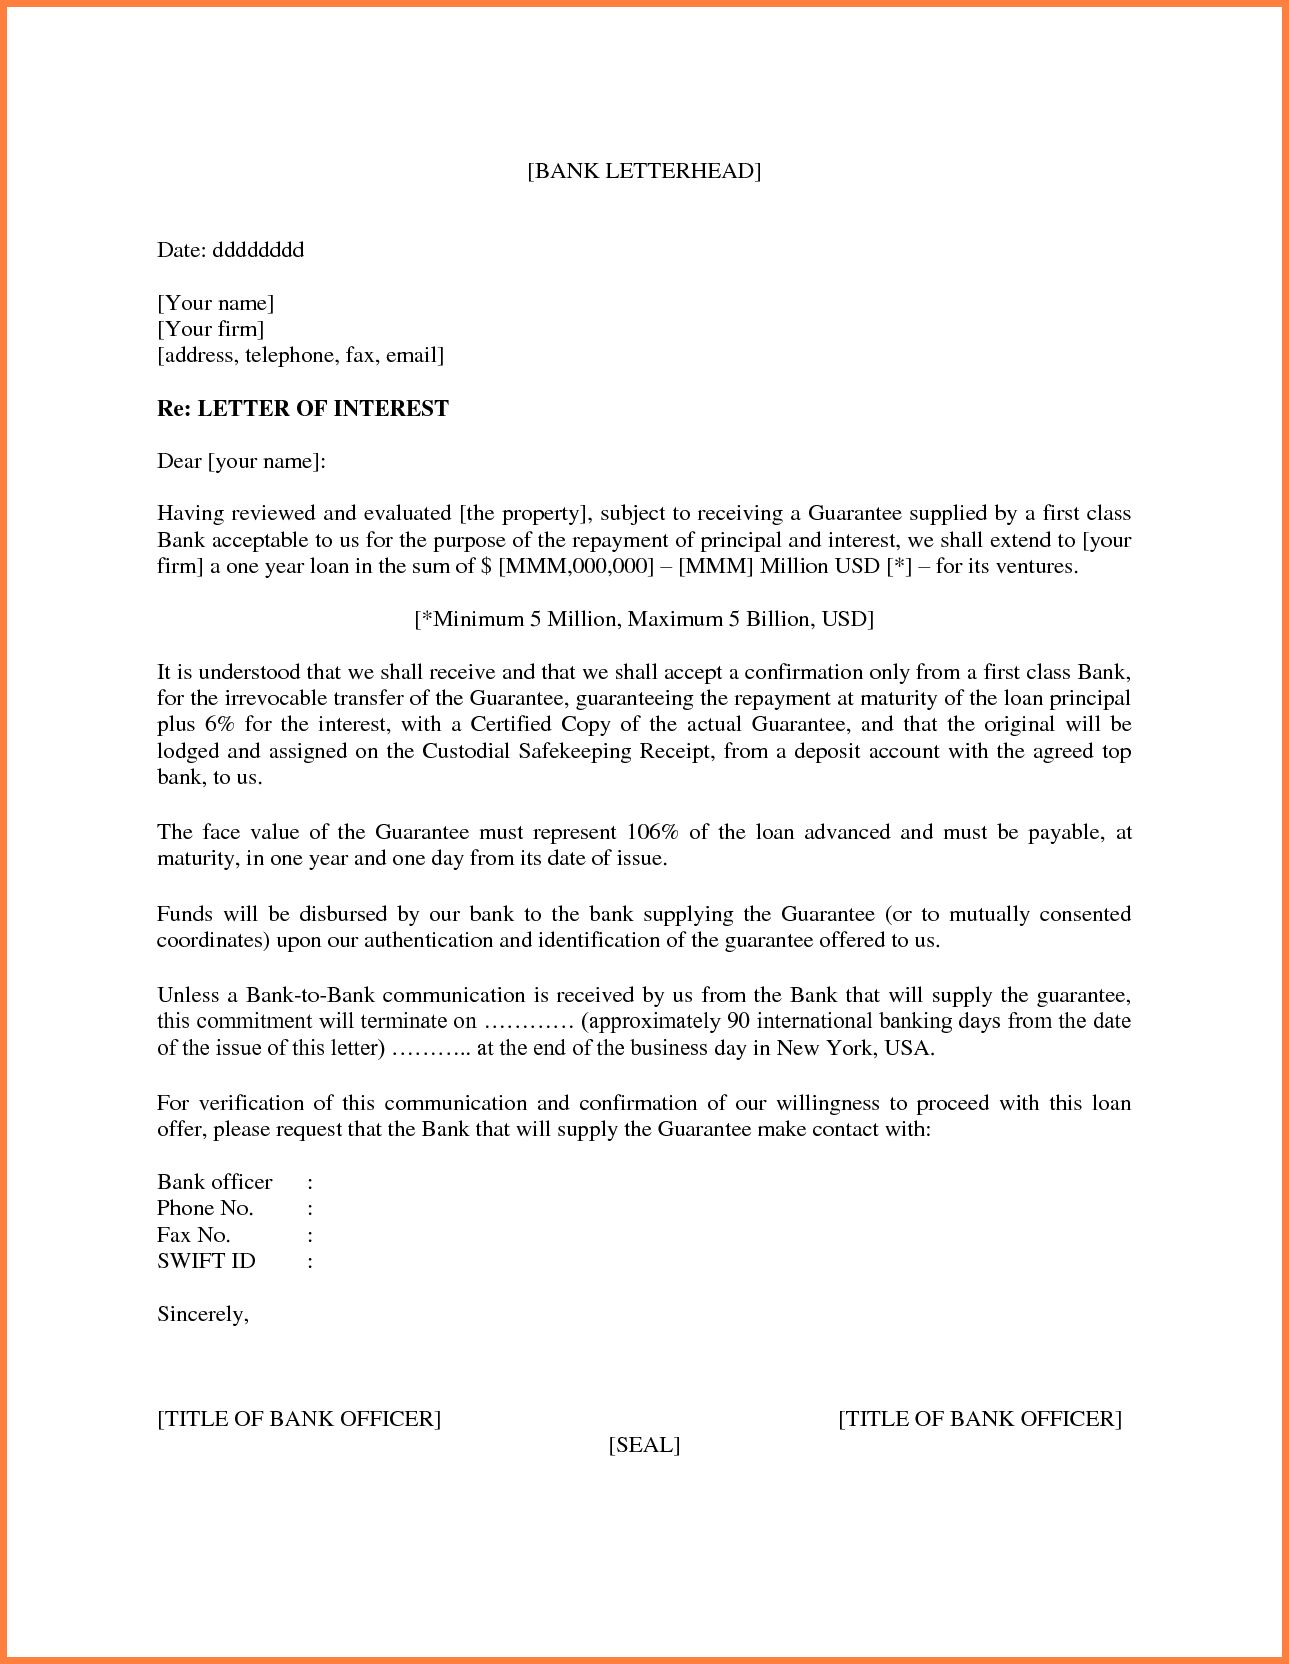 Letter Of Interest Template Microsoft Word 11 New Thoughts With Regard To Letter Of I Letter Of Interest Template Letter Template Word Business Letter Template